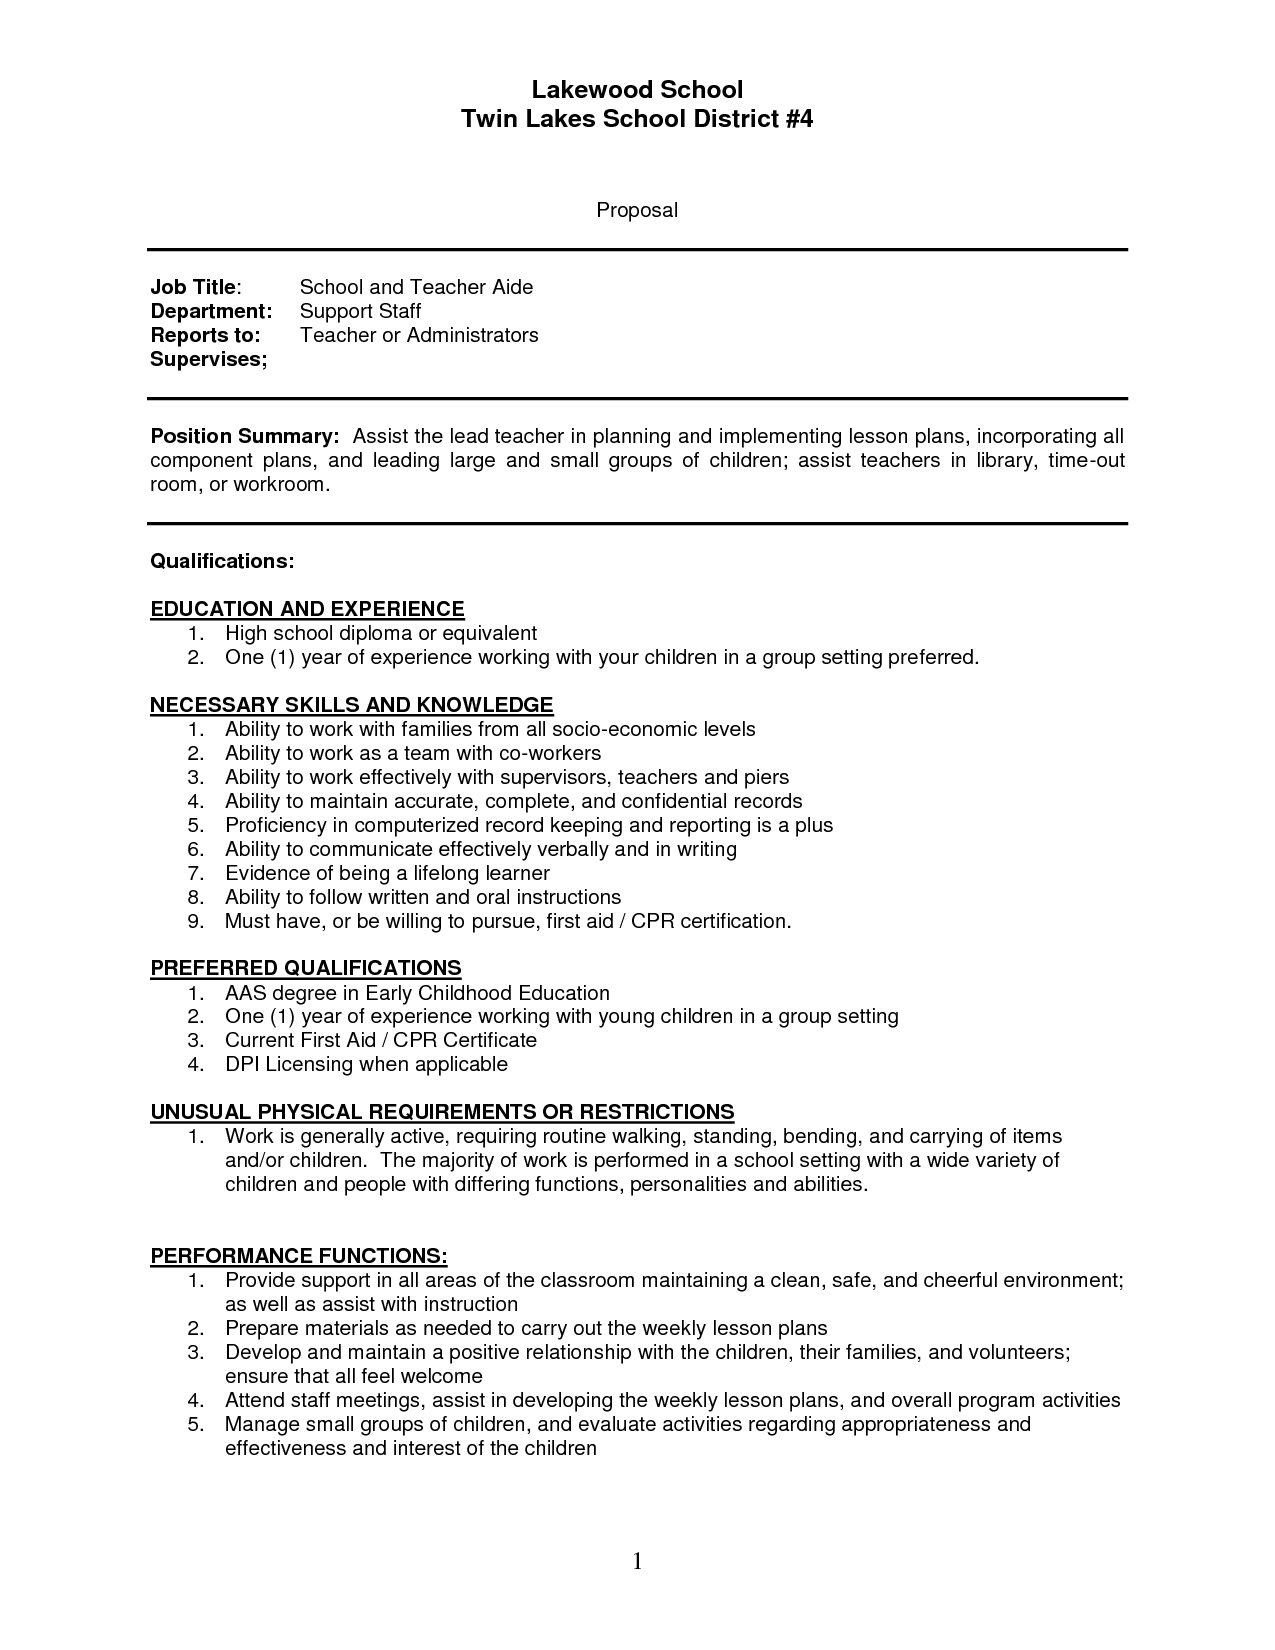 How To Write A Resume For Teacher Job Teacher Assistant Sample Resume Sample Resume Of Teachers